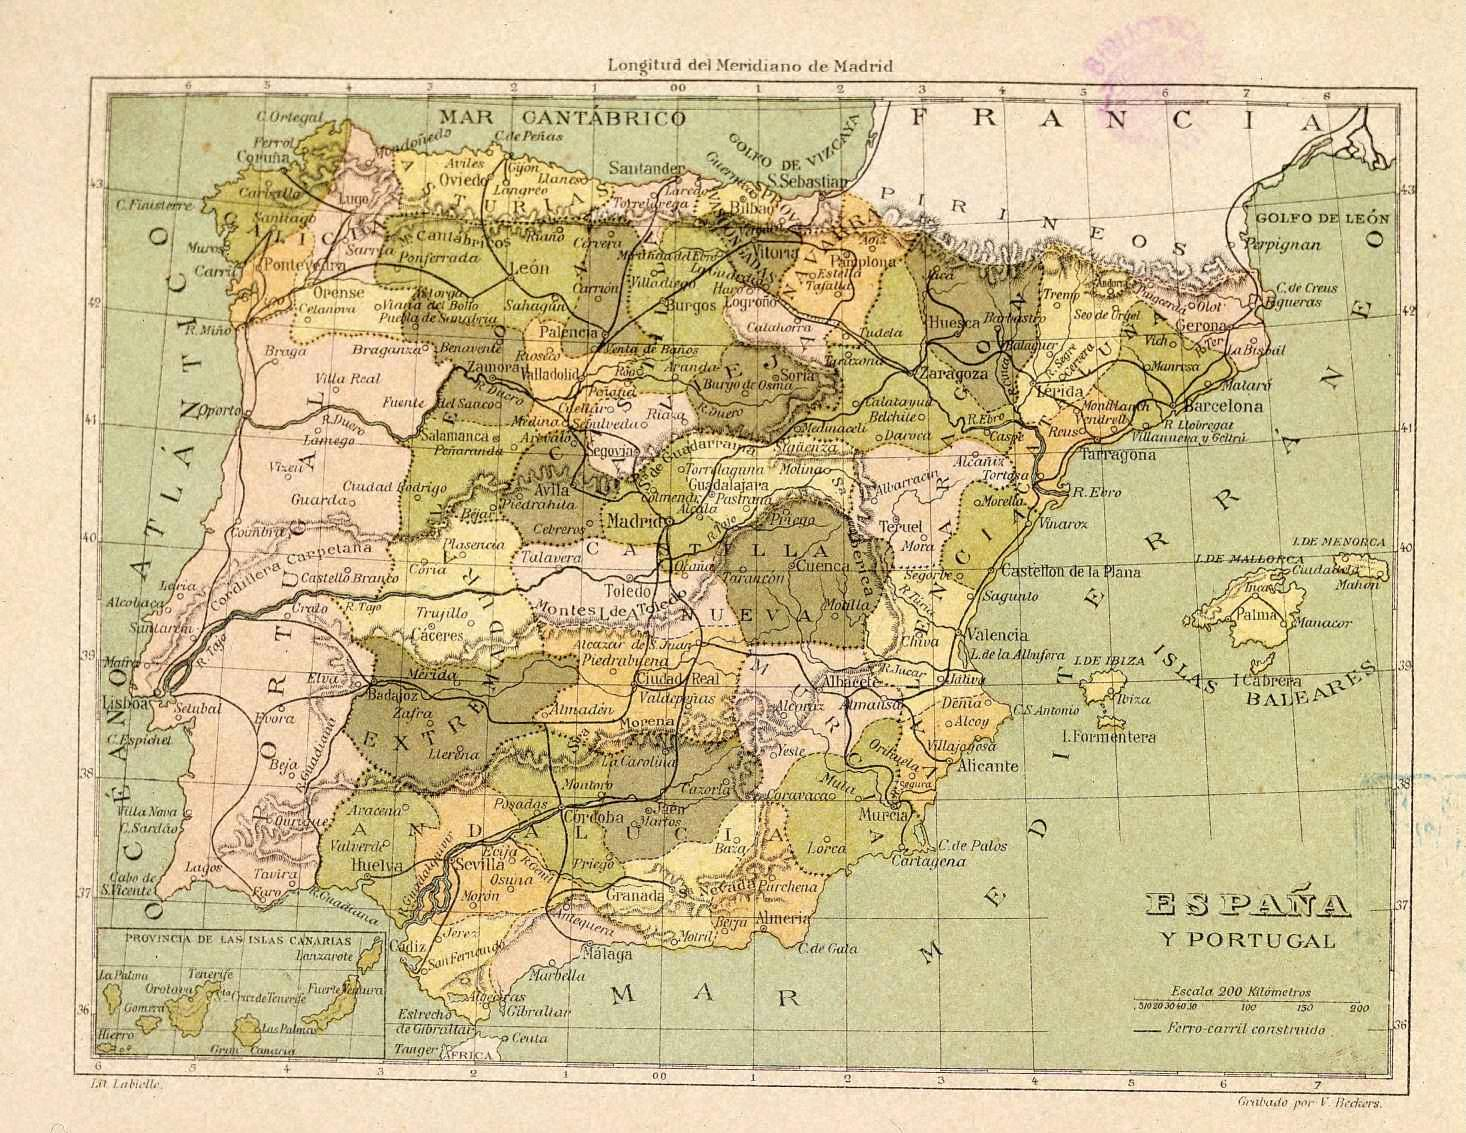 Provincial division of Spain 1850